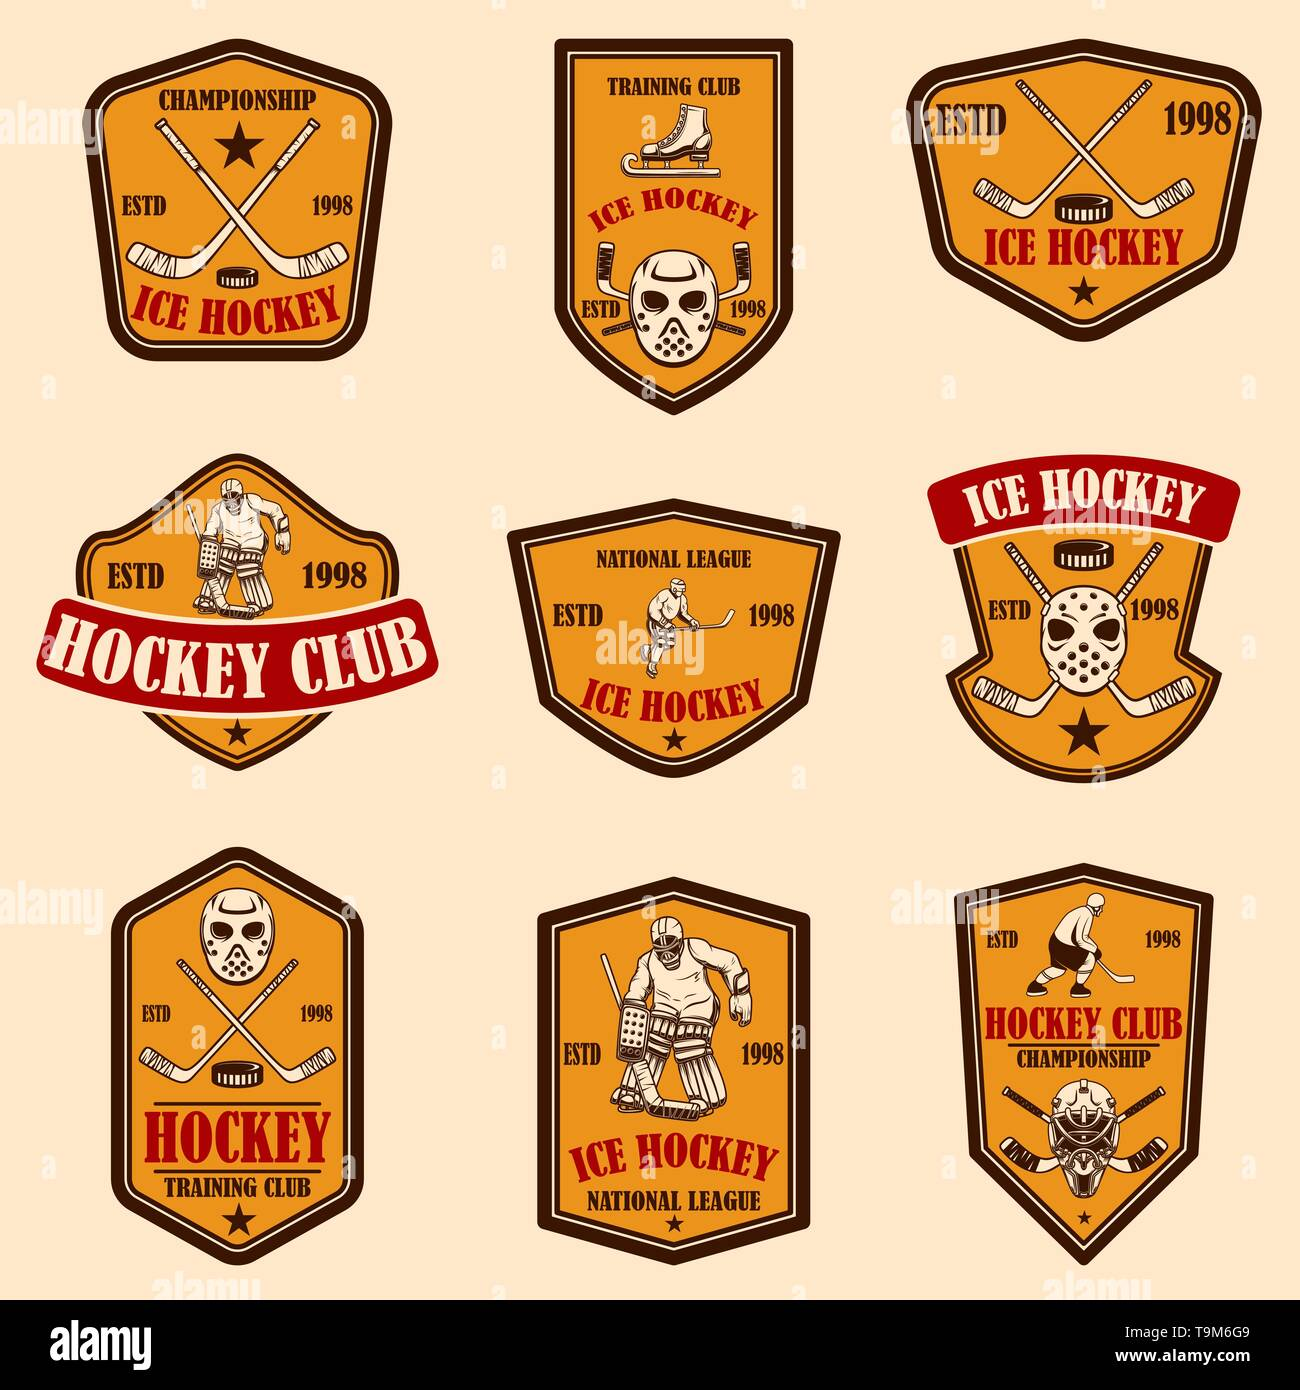 Set of hockey club emblems. Design element for logo, label, sign, poster, banner. Vector illustration - Stock Image